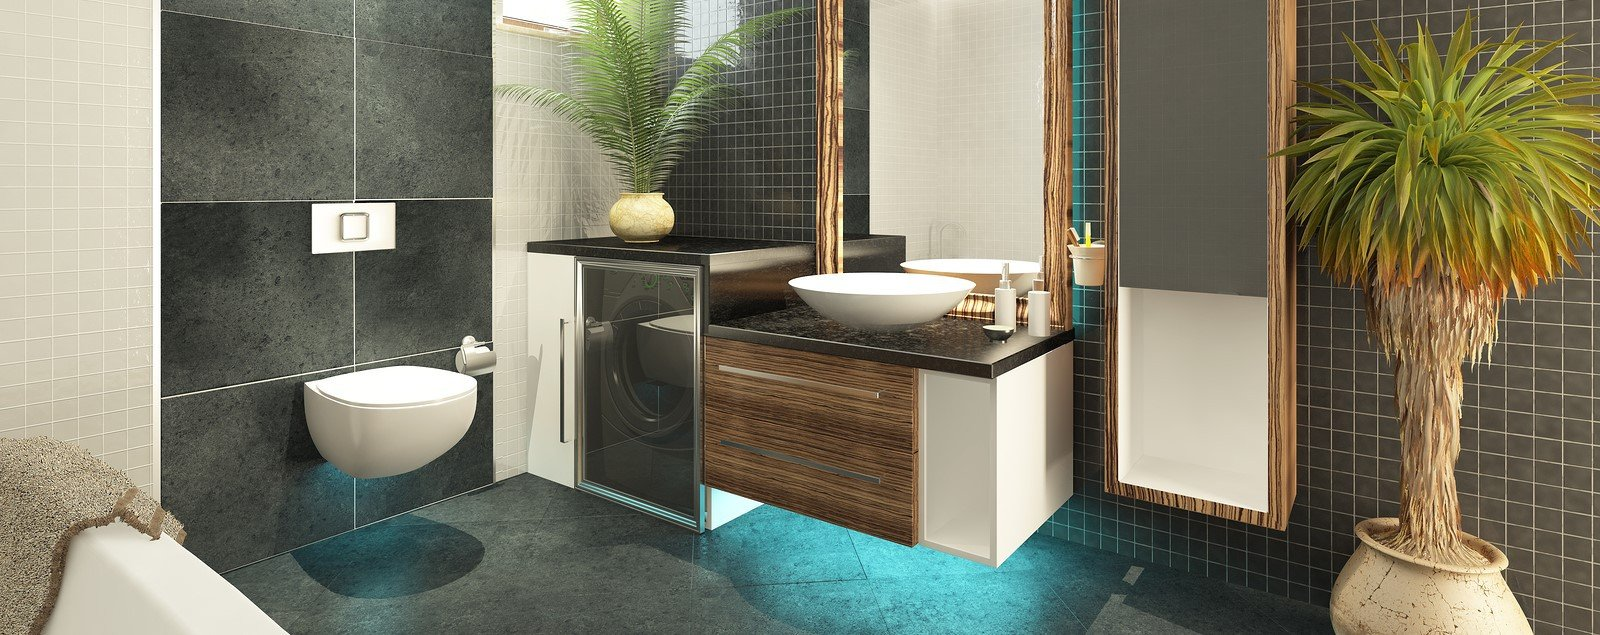 Turquoise accented vanity in a contemporary bathroom.